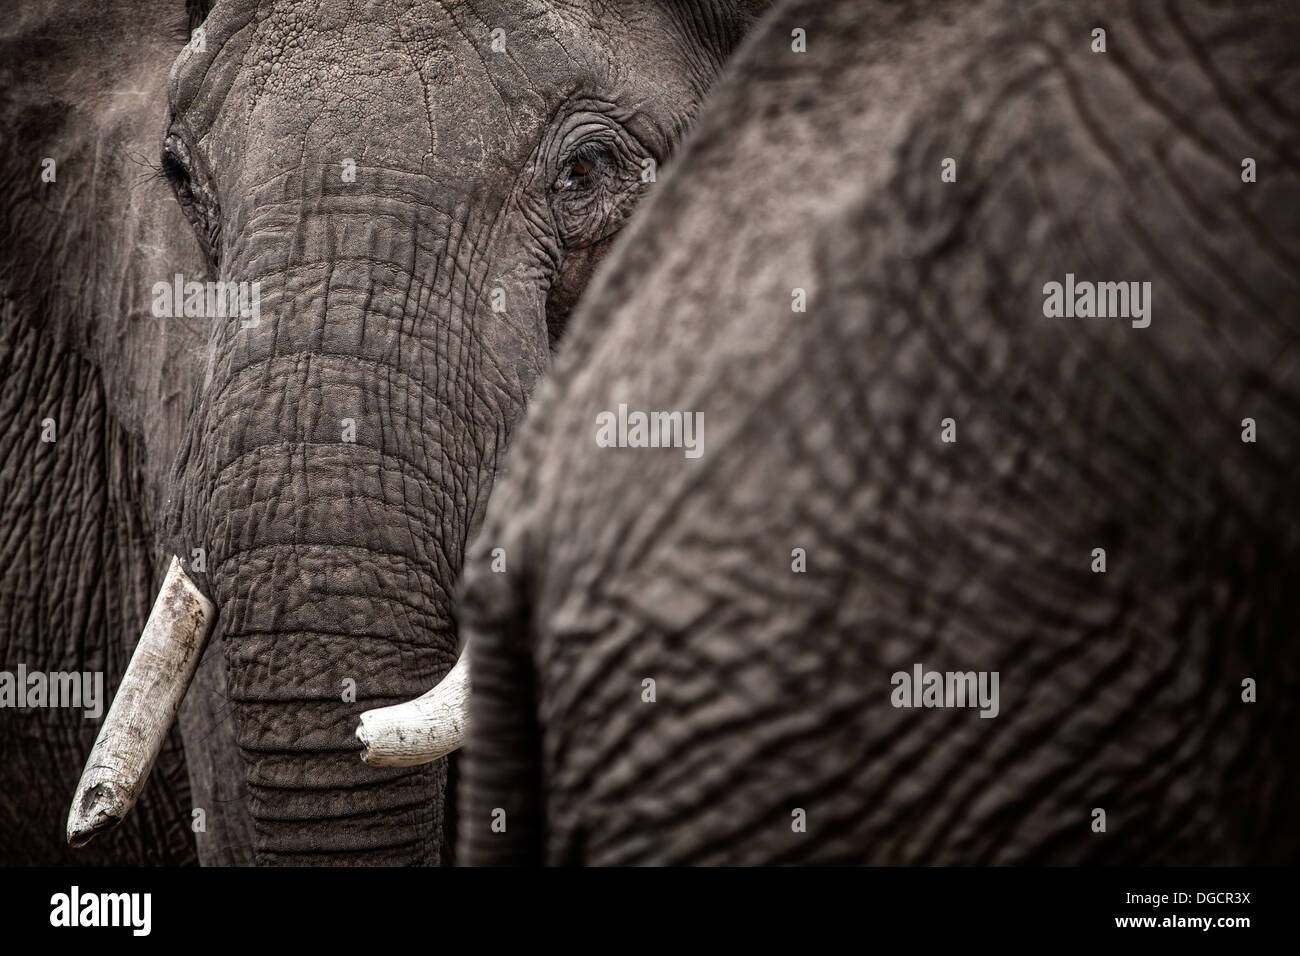 A large elephant looks around the behind of another elephant - Stock Image